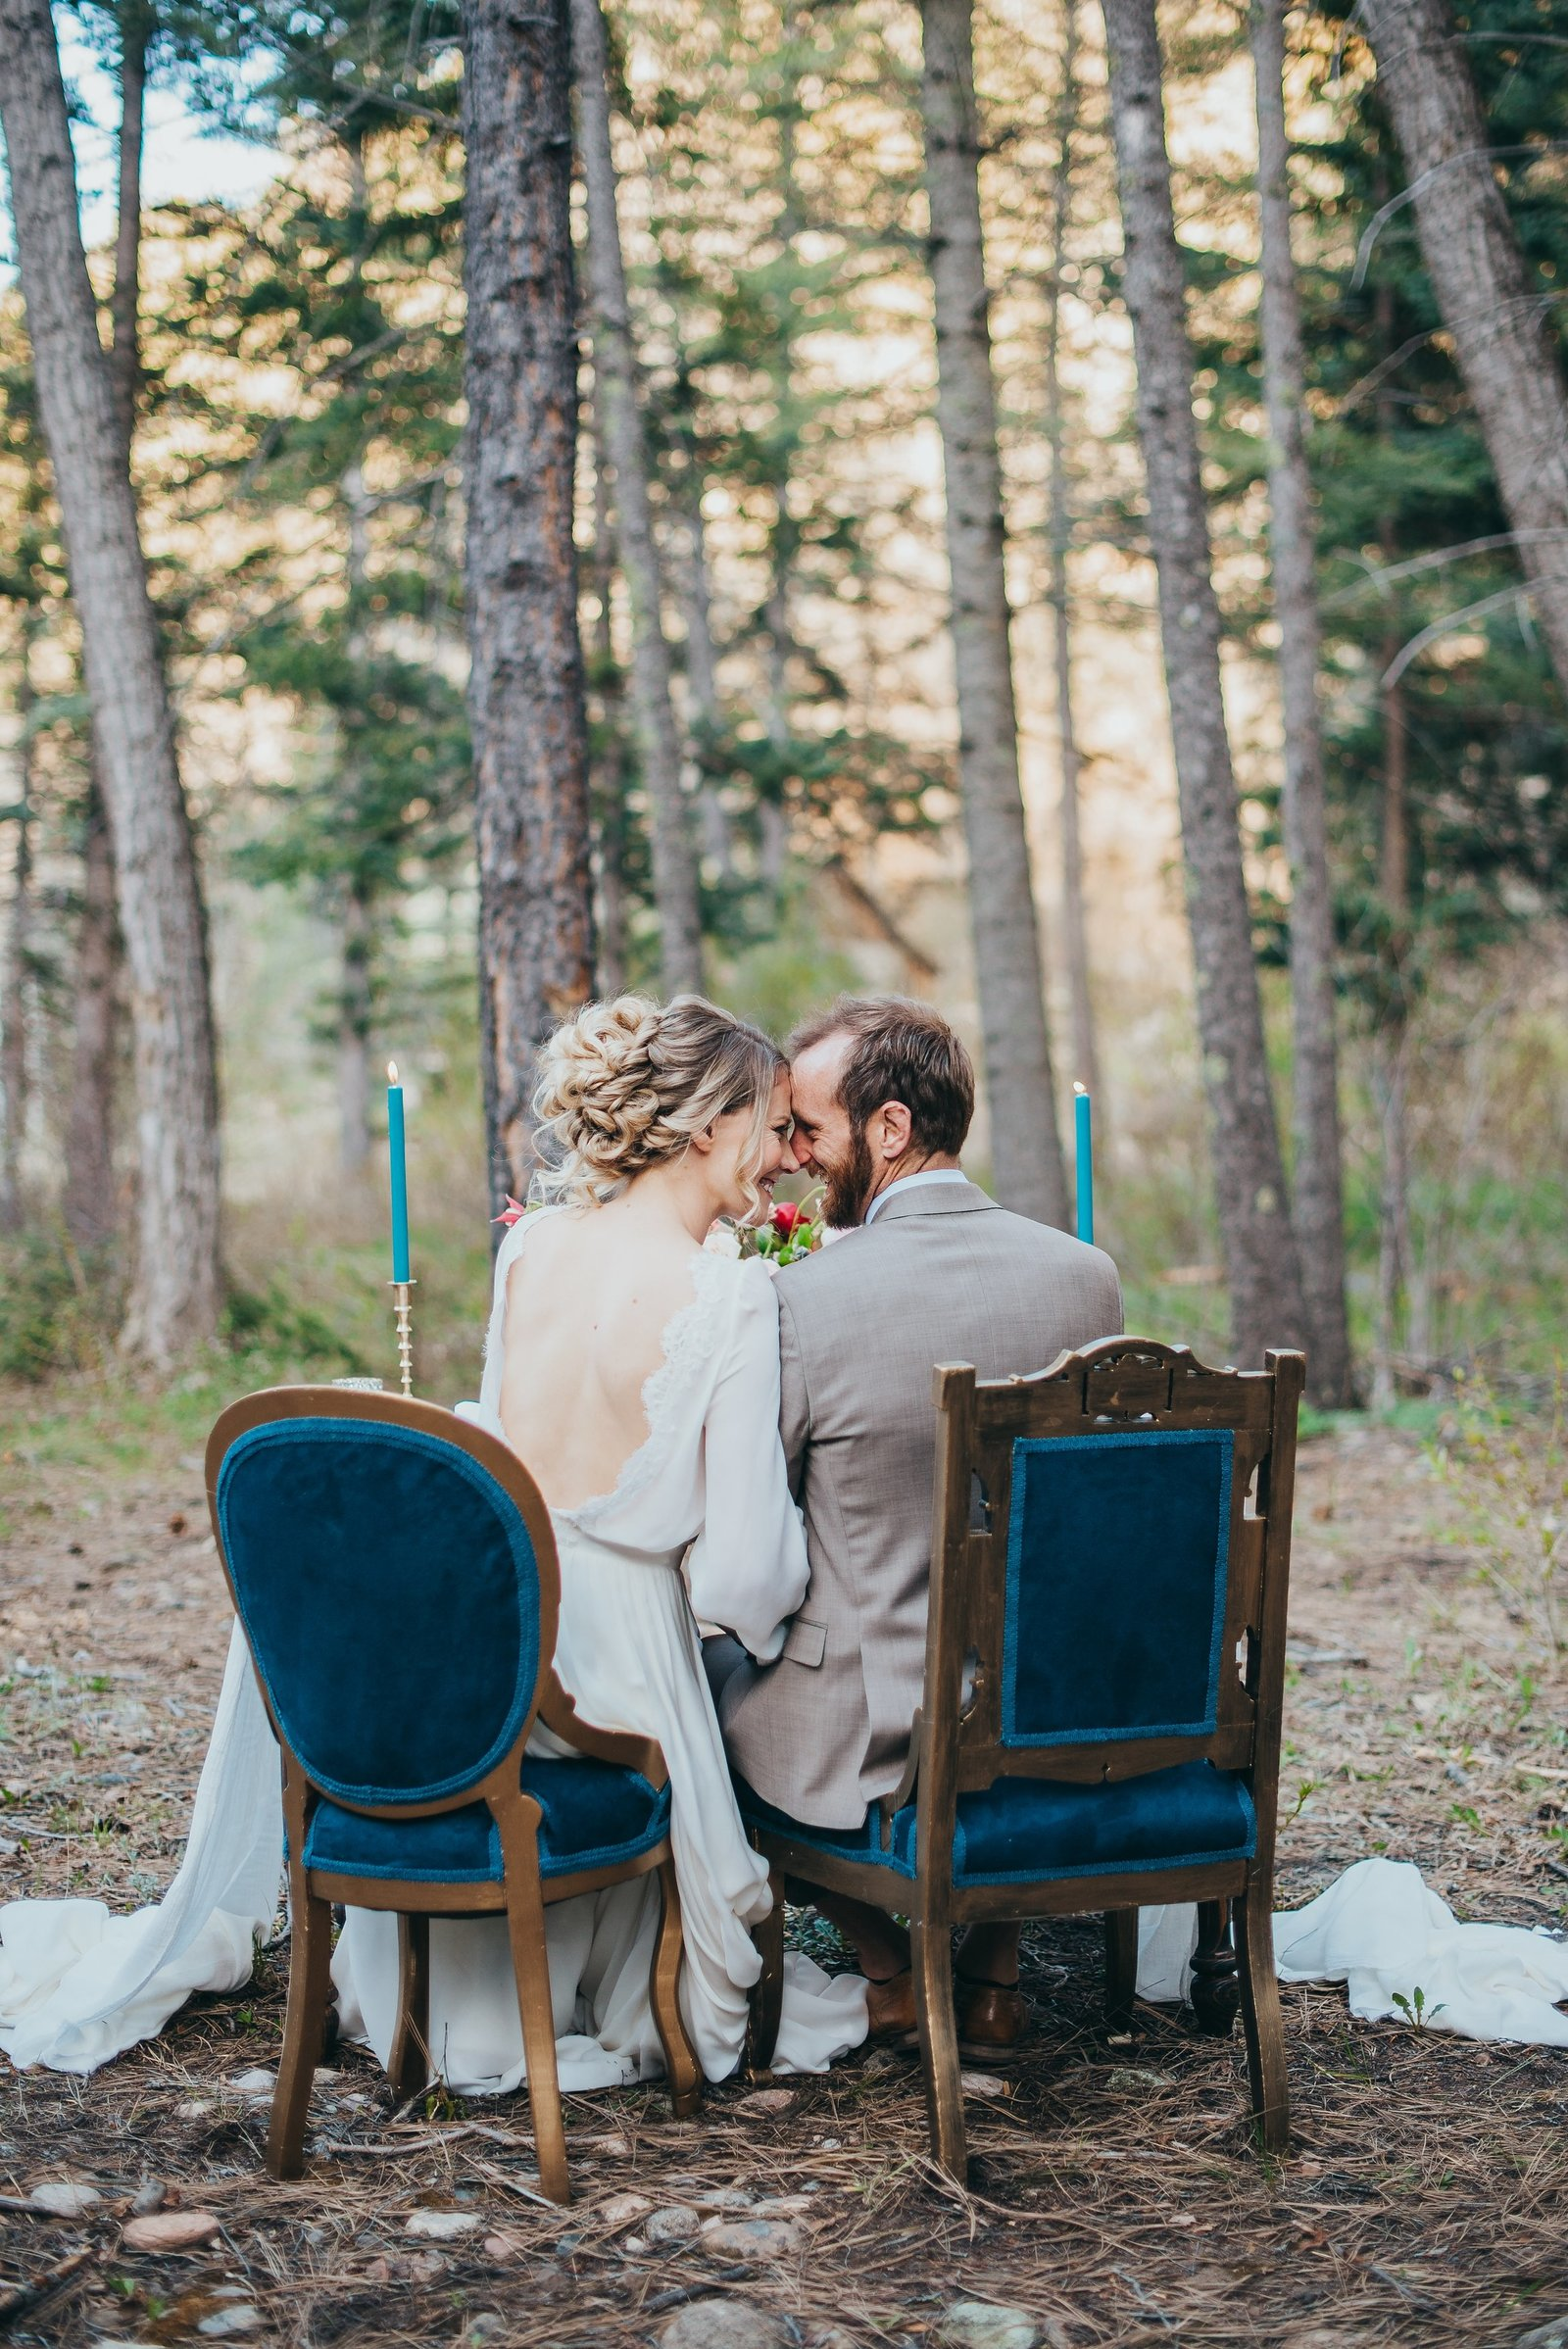 Mountain-Elopement-Sweetheart-Table